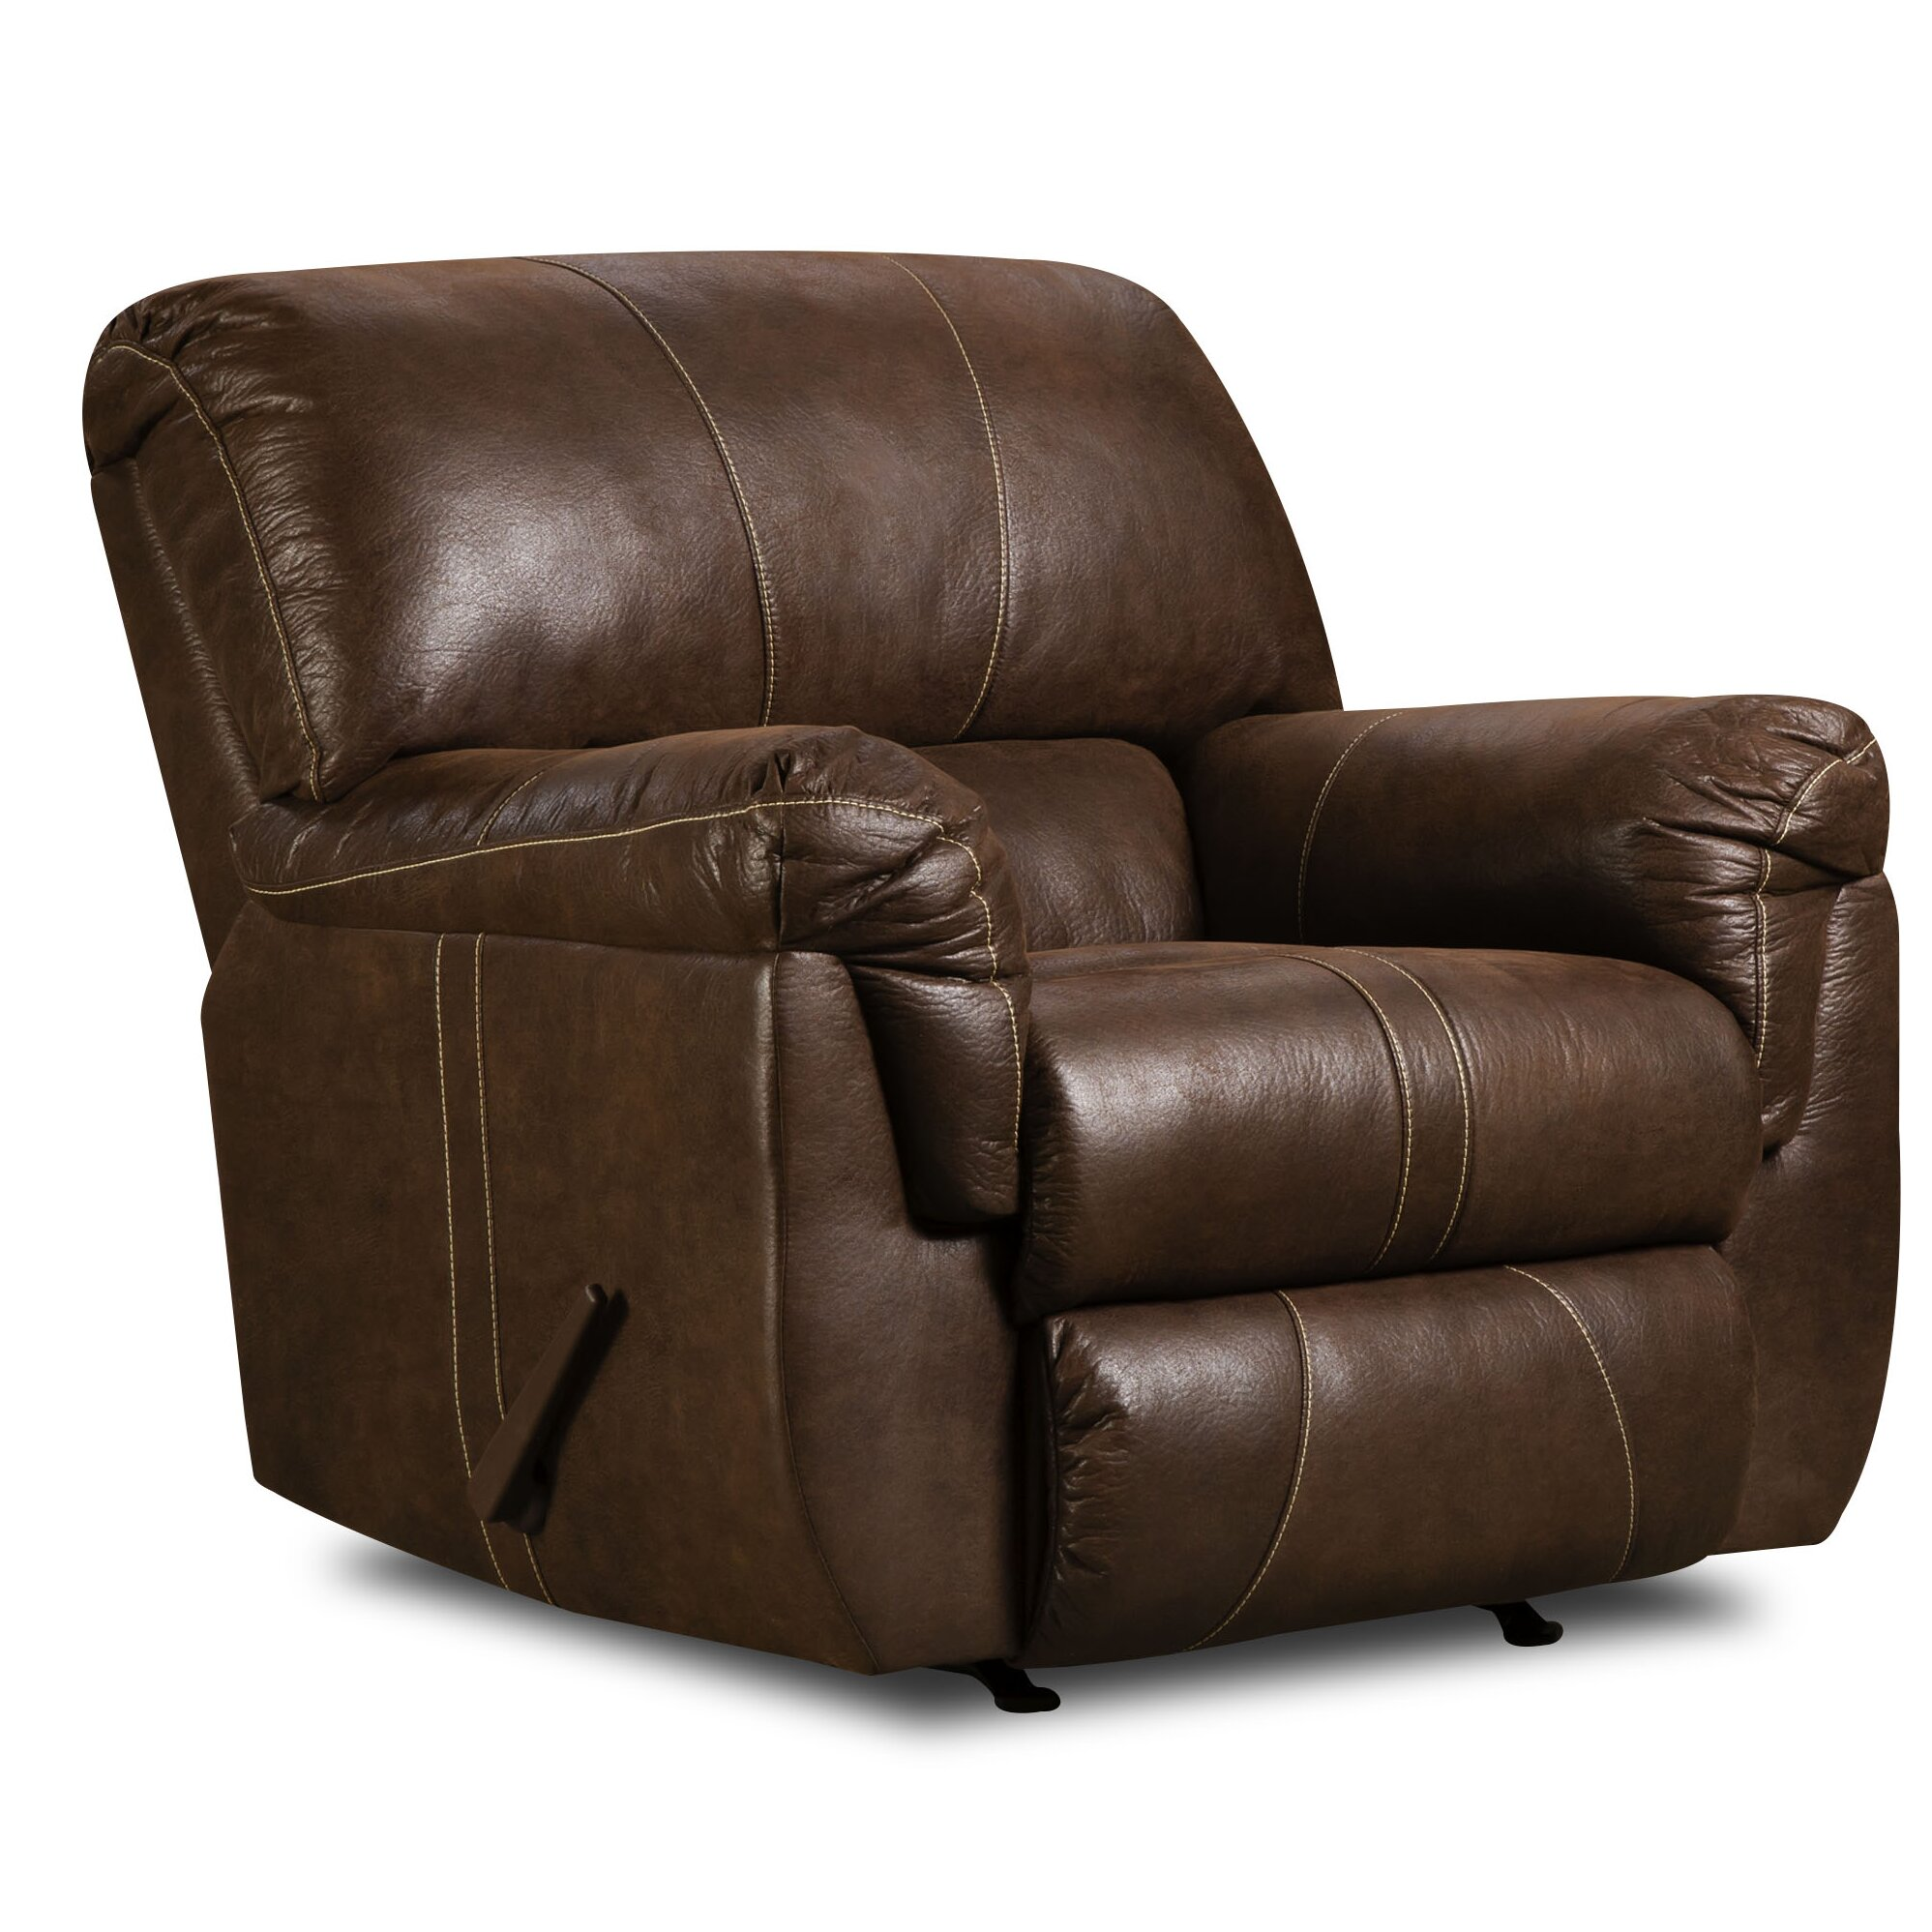 Simmons Upholstery Renegade Beautyrest Rocker Recliner